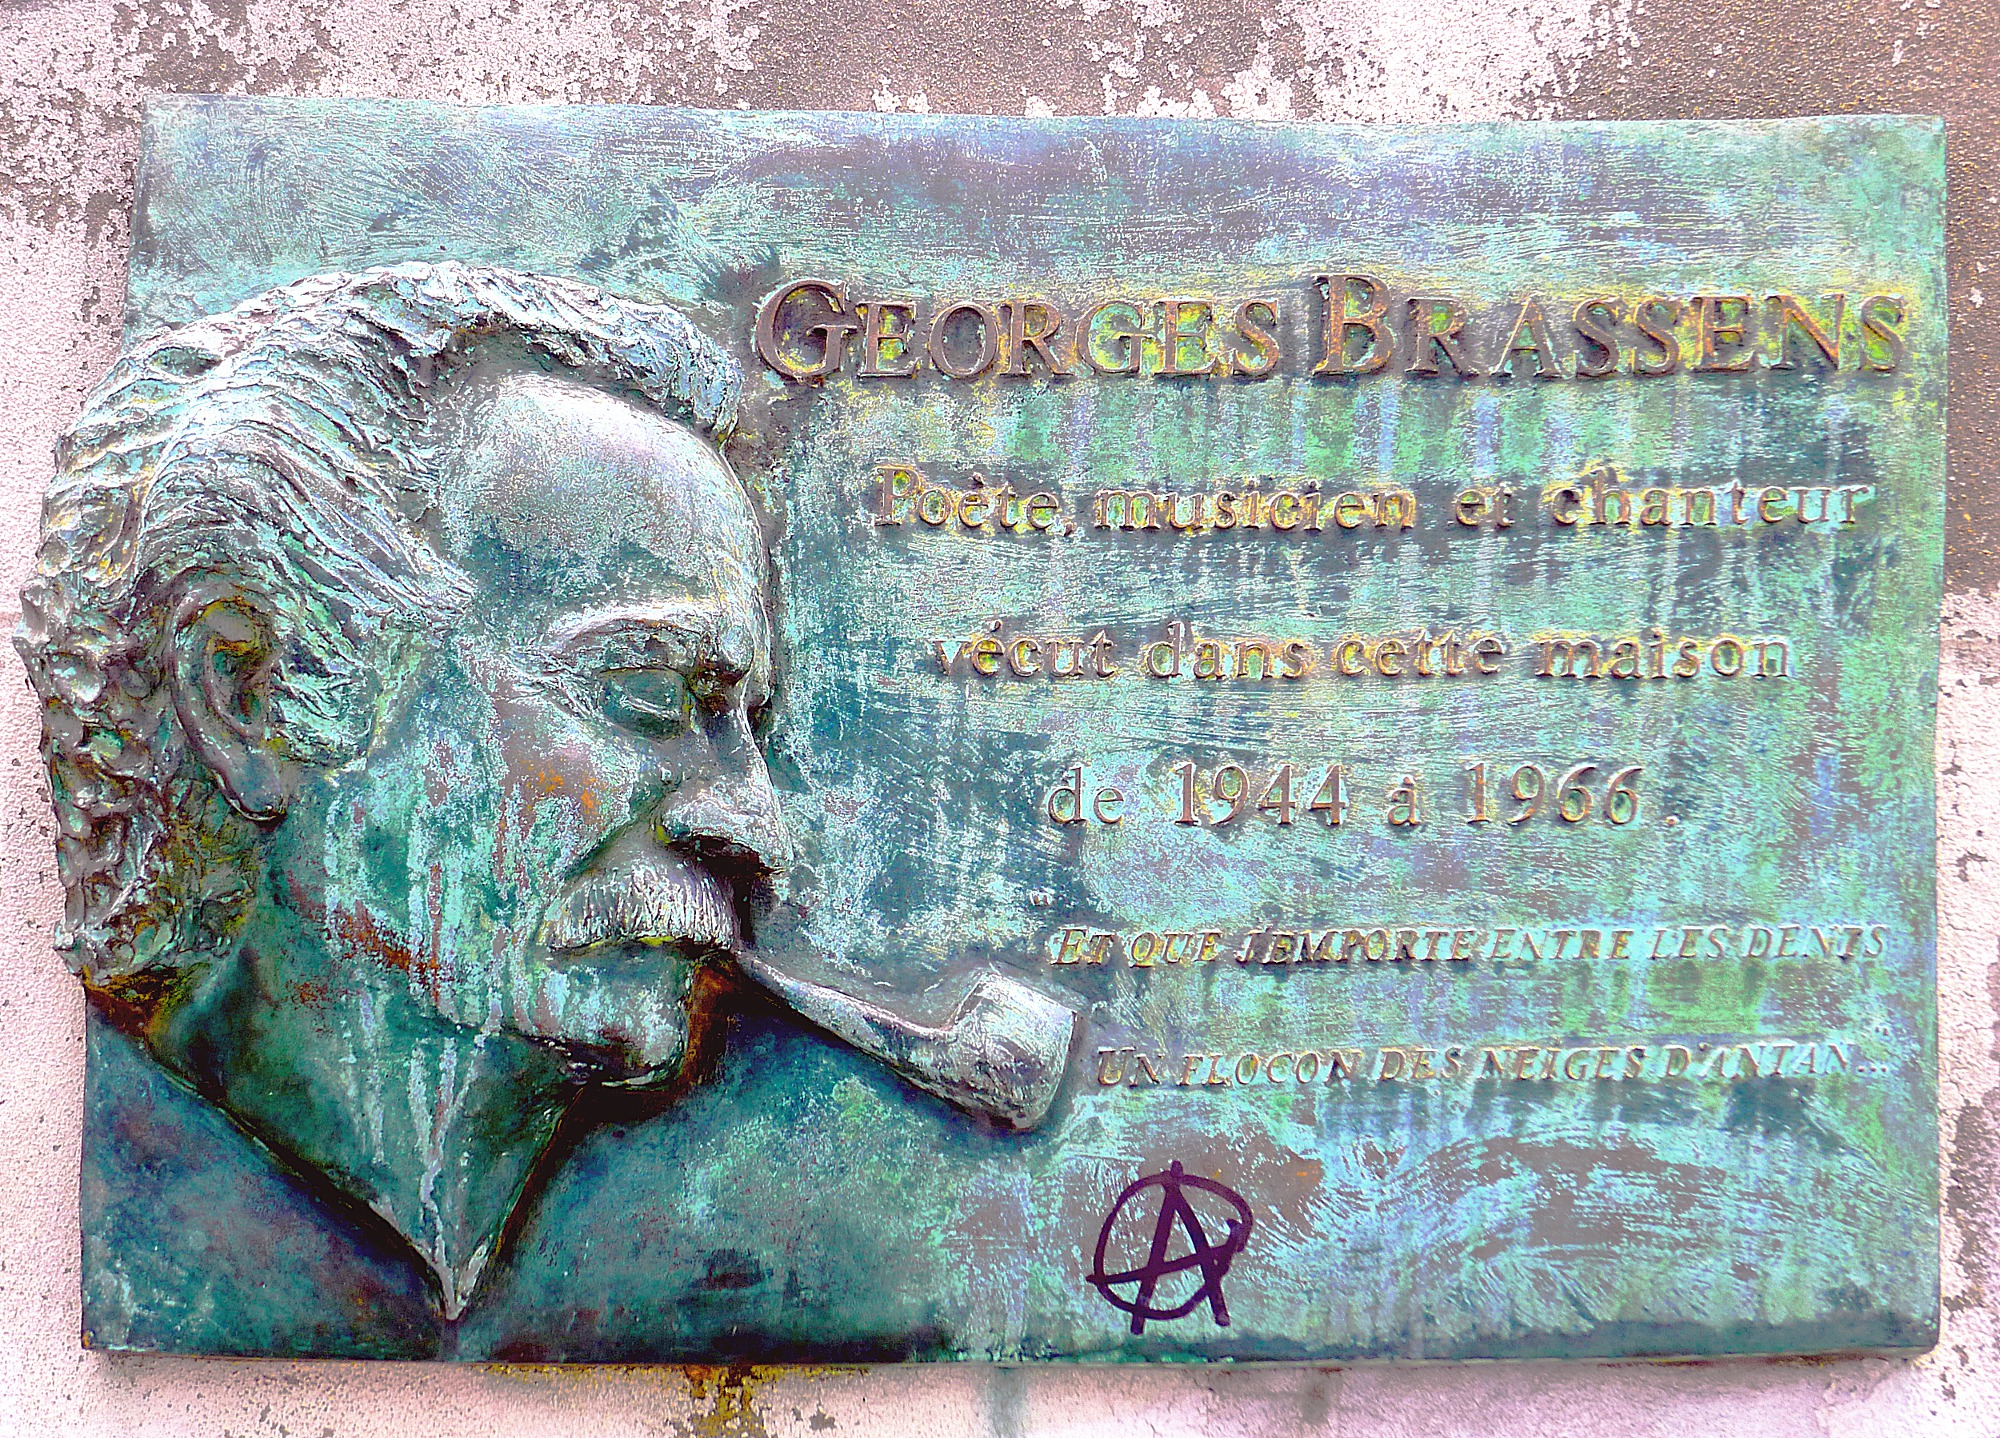 http://upload.wikimedia.org/wikipedia/commons/9/9f/P1090716_Paris_XIV_impasse_Florimont_plaque_Georges-Brassens_rwk.JPG